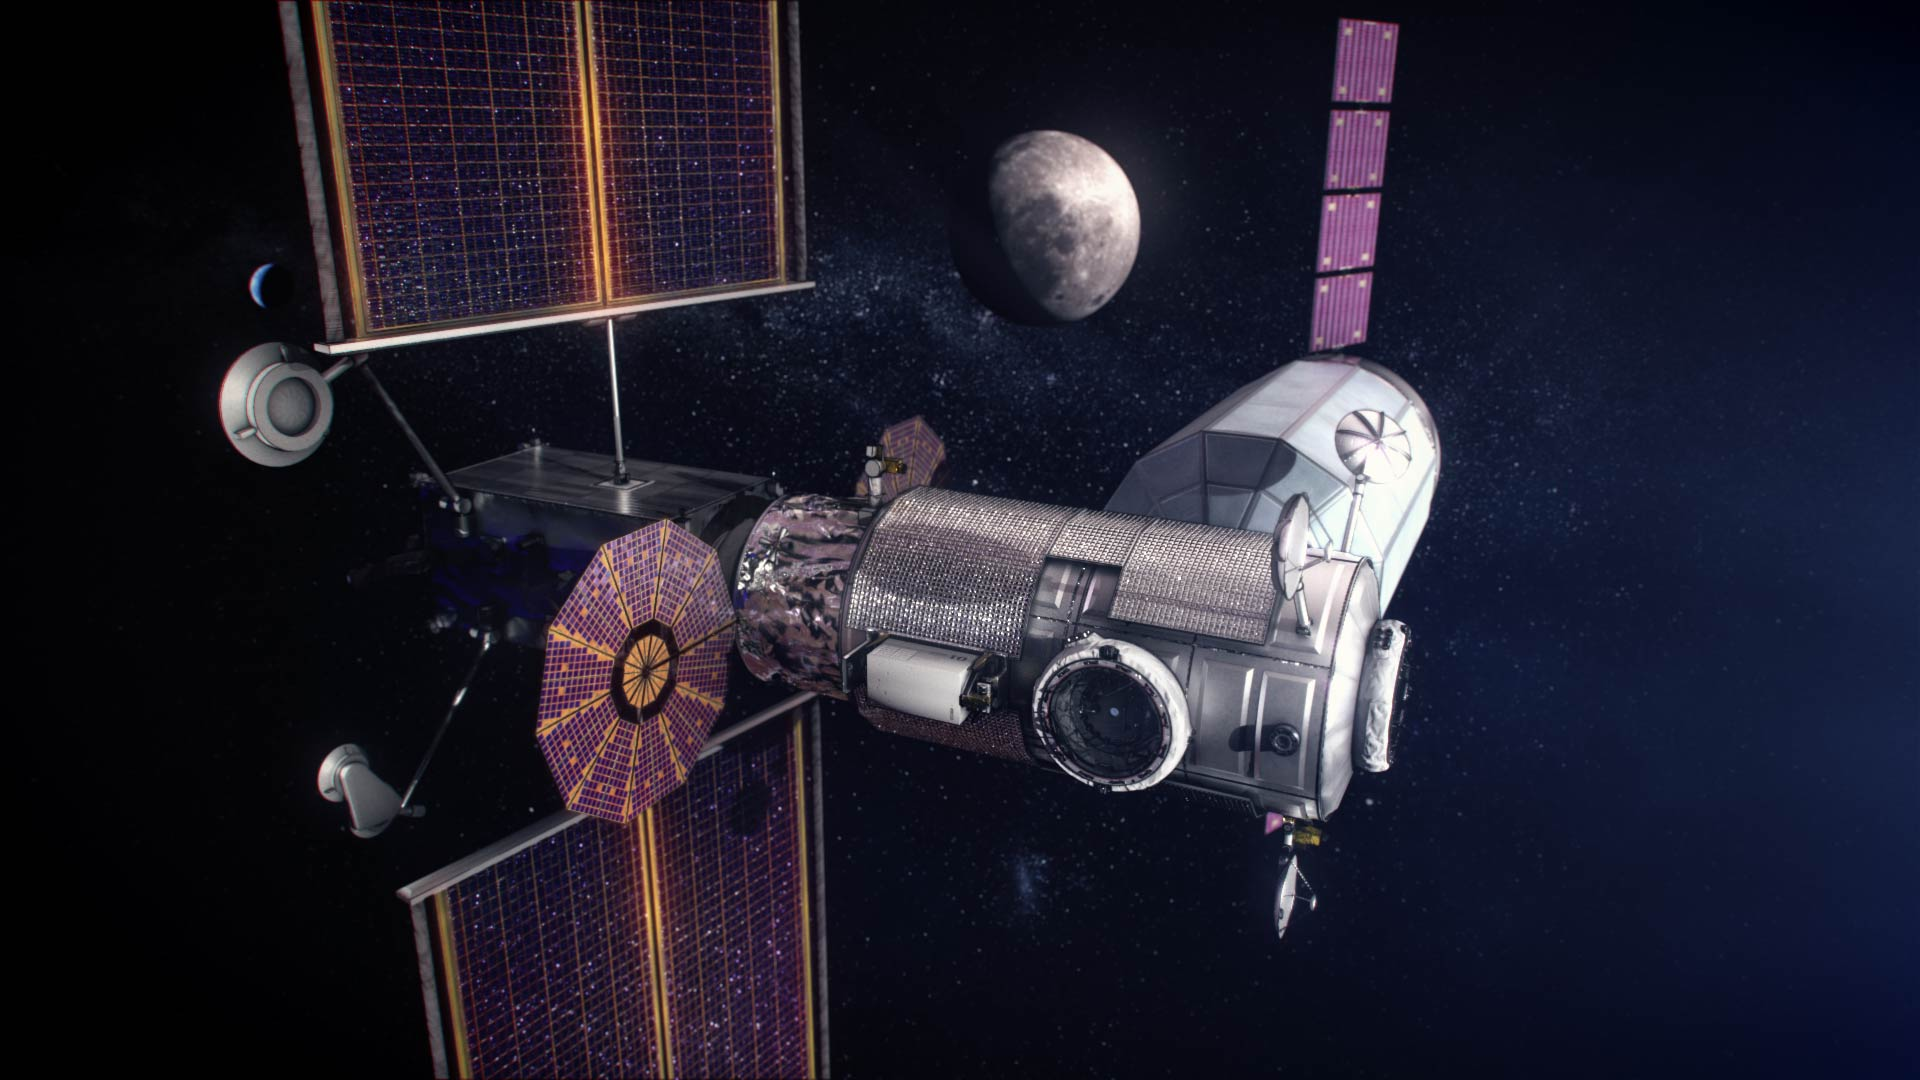 Nasa Selects First Science Instruments To Send To Gateway